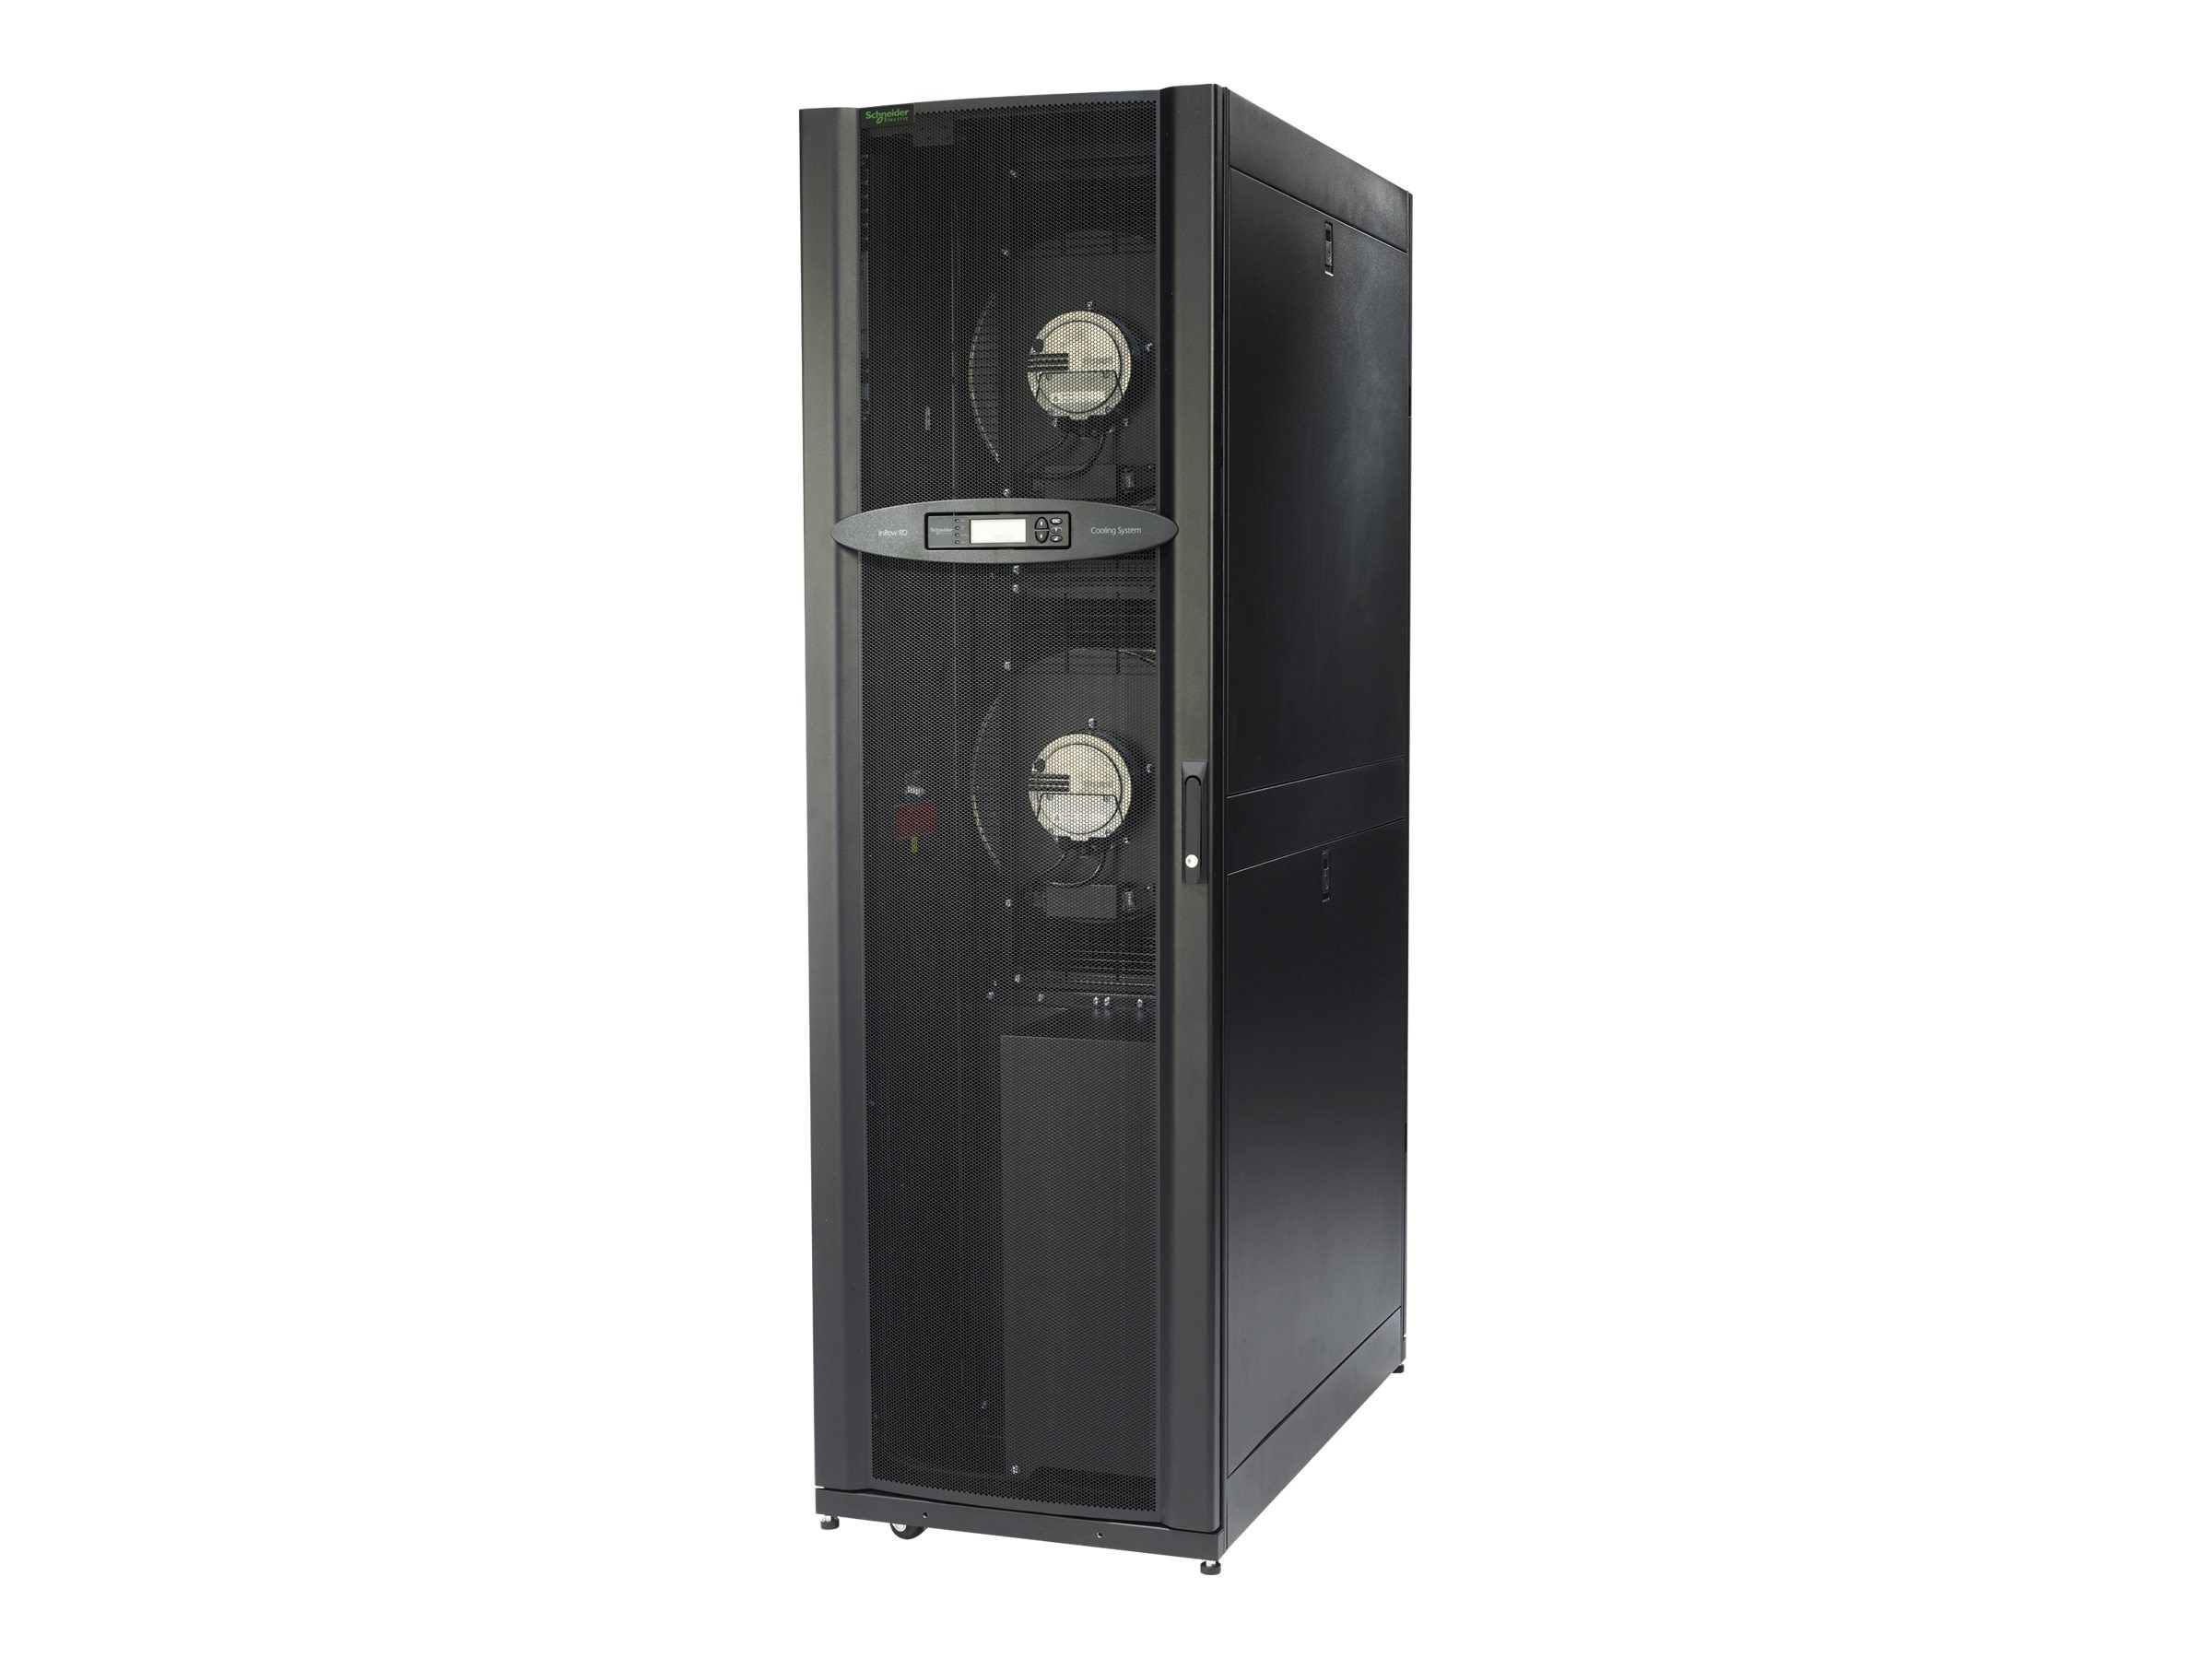 APC InRow RD 600mm Air Cooled 460-480V 60Hz, ACRD501, 27562290, Rack Cooling Systems